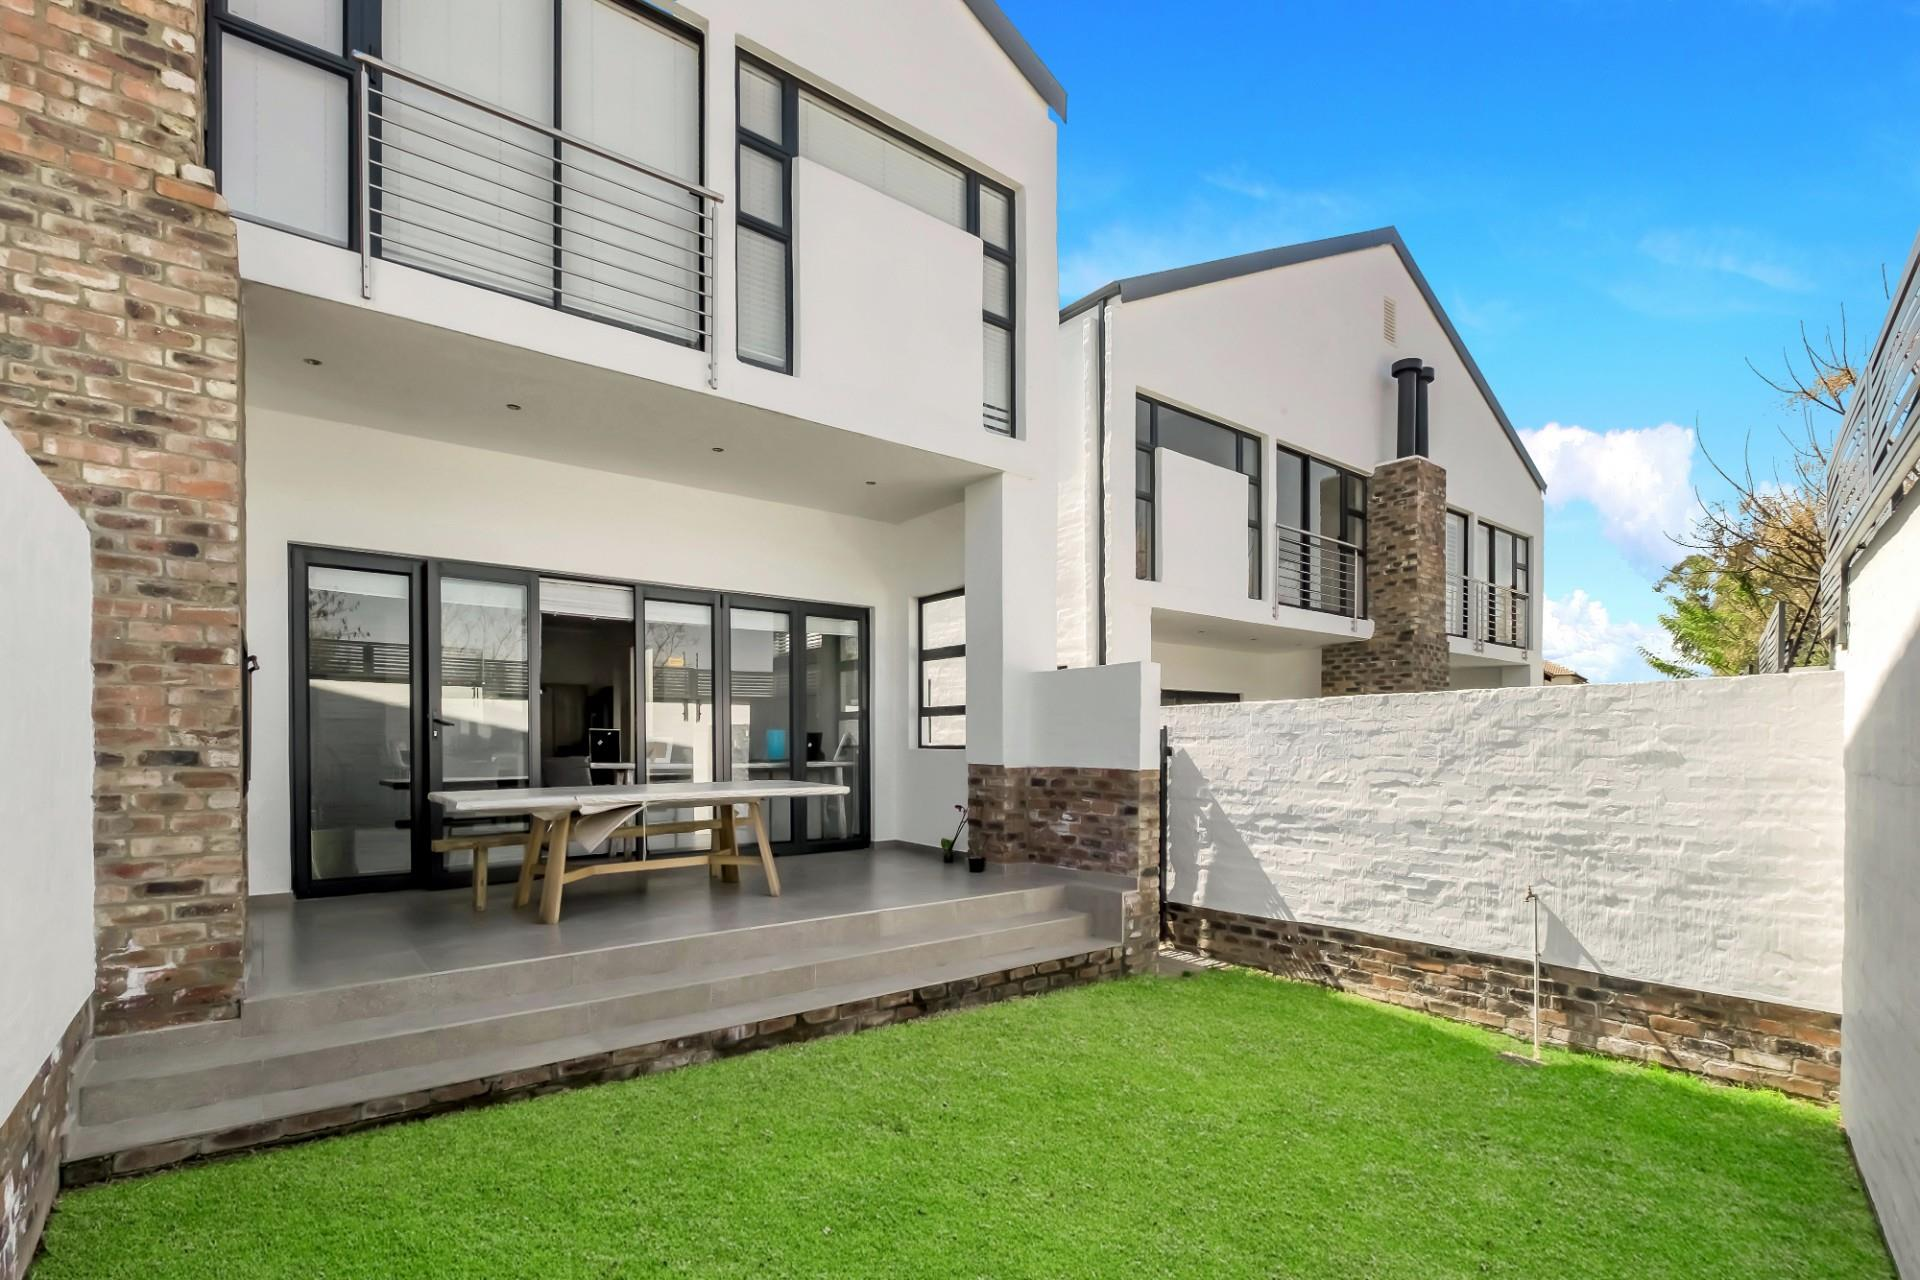 3 Bedroom Townhouse For Sale In Bryanston Re Max Of Southern Africa